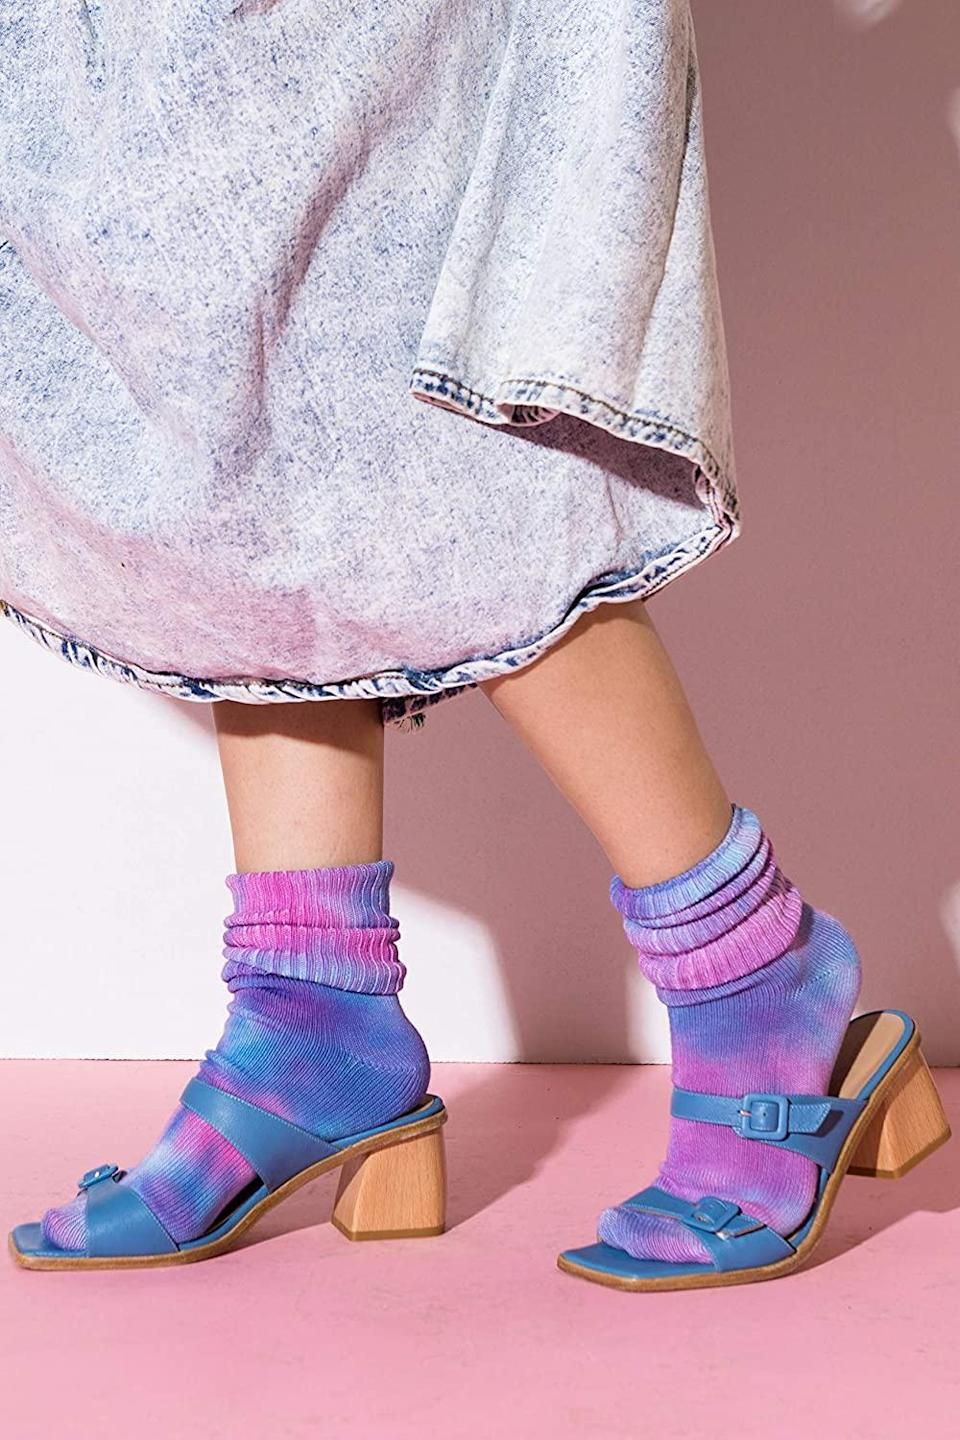 """<h2>Masha Apparel Tie Dye Bamboo Socks</h2><br>These super-soft, sweat-wicking bamboo socks get high marks for both trendiness and comfort. Your best bud will approve, whether they're wearing these colorful accessories around the house or hitting the trail for a multi-mile hike.<br><br><em>Shop <strong><a href=""""https://www.amazon.com/Handmade/b?ie=UTF8&node=11260432011"""" rel=""""nofollow noopener"""" target=""""_blank"""" data-ylk=""""slk:Amazon Handmade"""" class=""""link rapid-noclick-resp"""">Amazon Handmade</a></strong></em><br><br><strong>Masha Apparel</strong> Tie Dye Bamboo Socks, $, available at <a href=""""https://amzn.to/39LWymC"""" rel=""""nofollow noopener"""" target=""""_blank"""" data-ylk=""""slk:Amazon"""" class=""""link rapid-noclick-resp"""">Amazon</a>"""